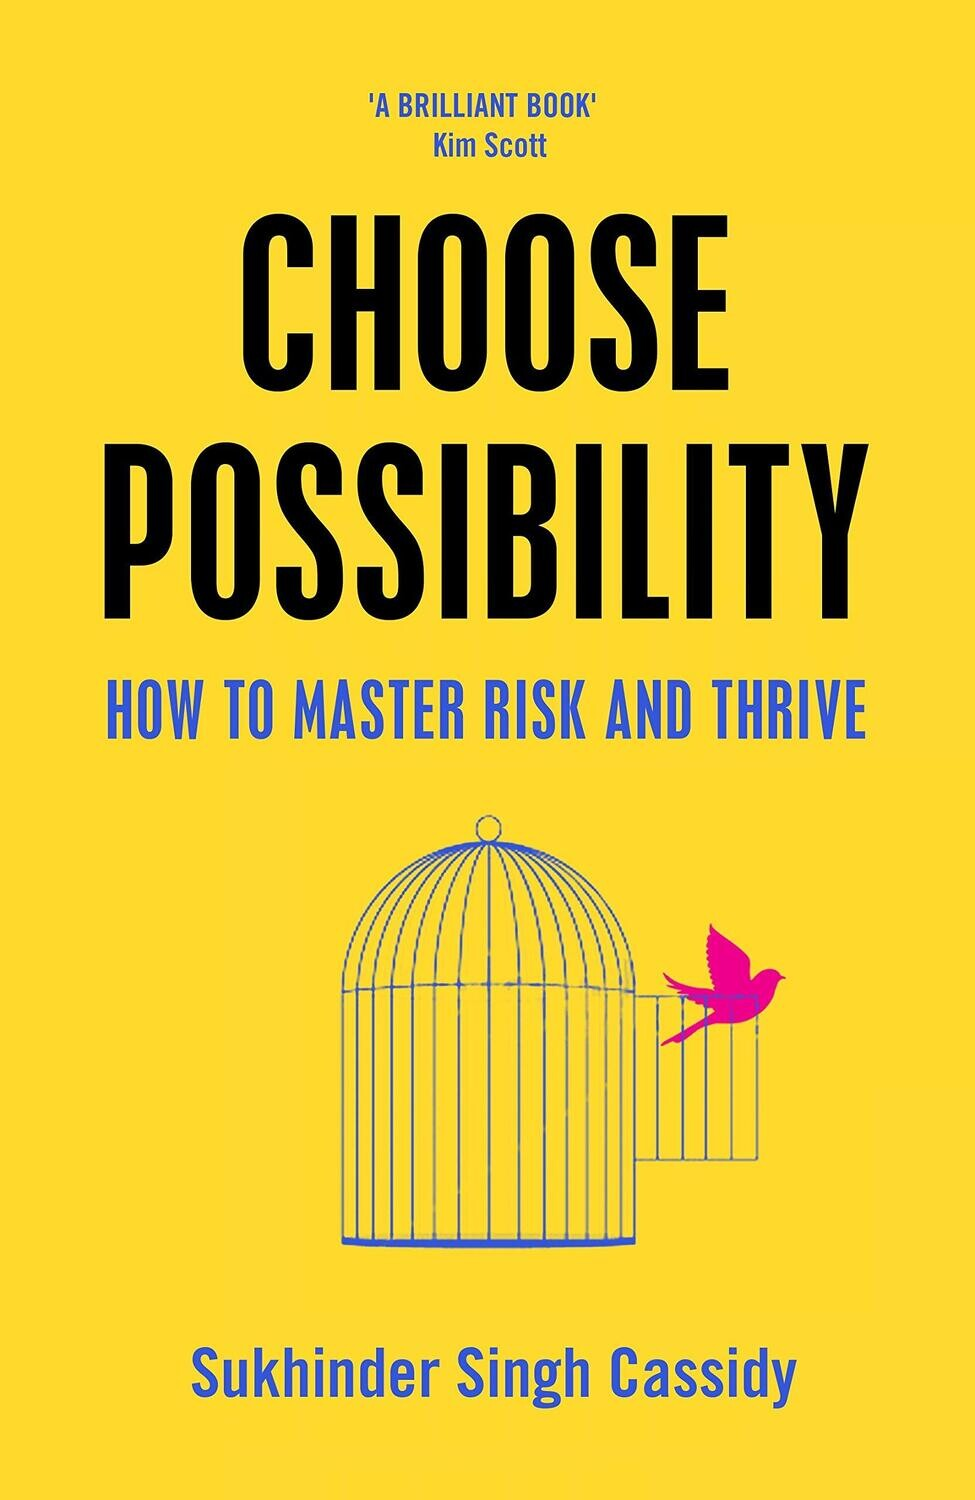 Choose Possibility: How to Master Risk and Thrive